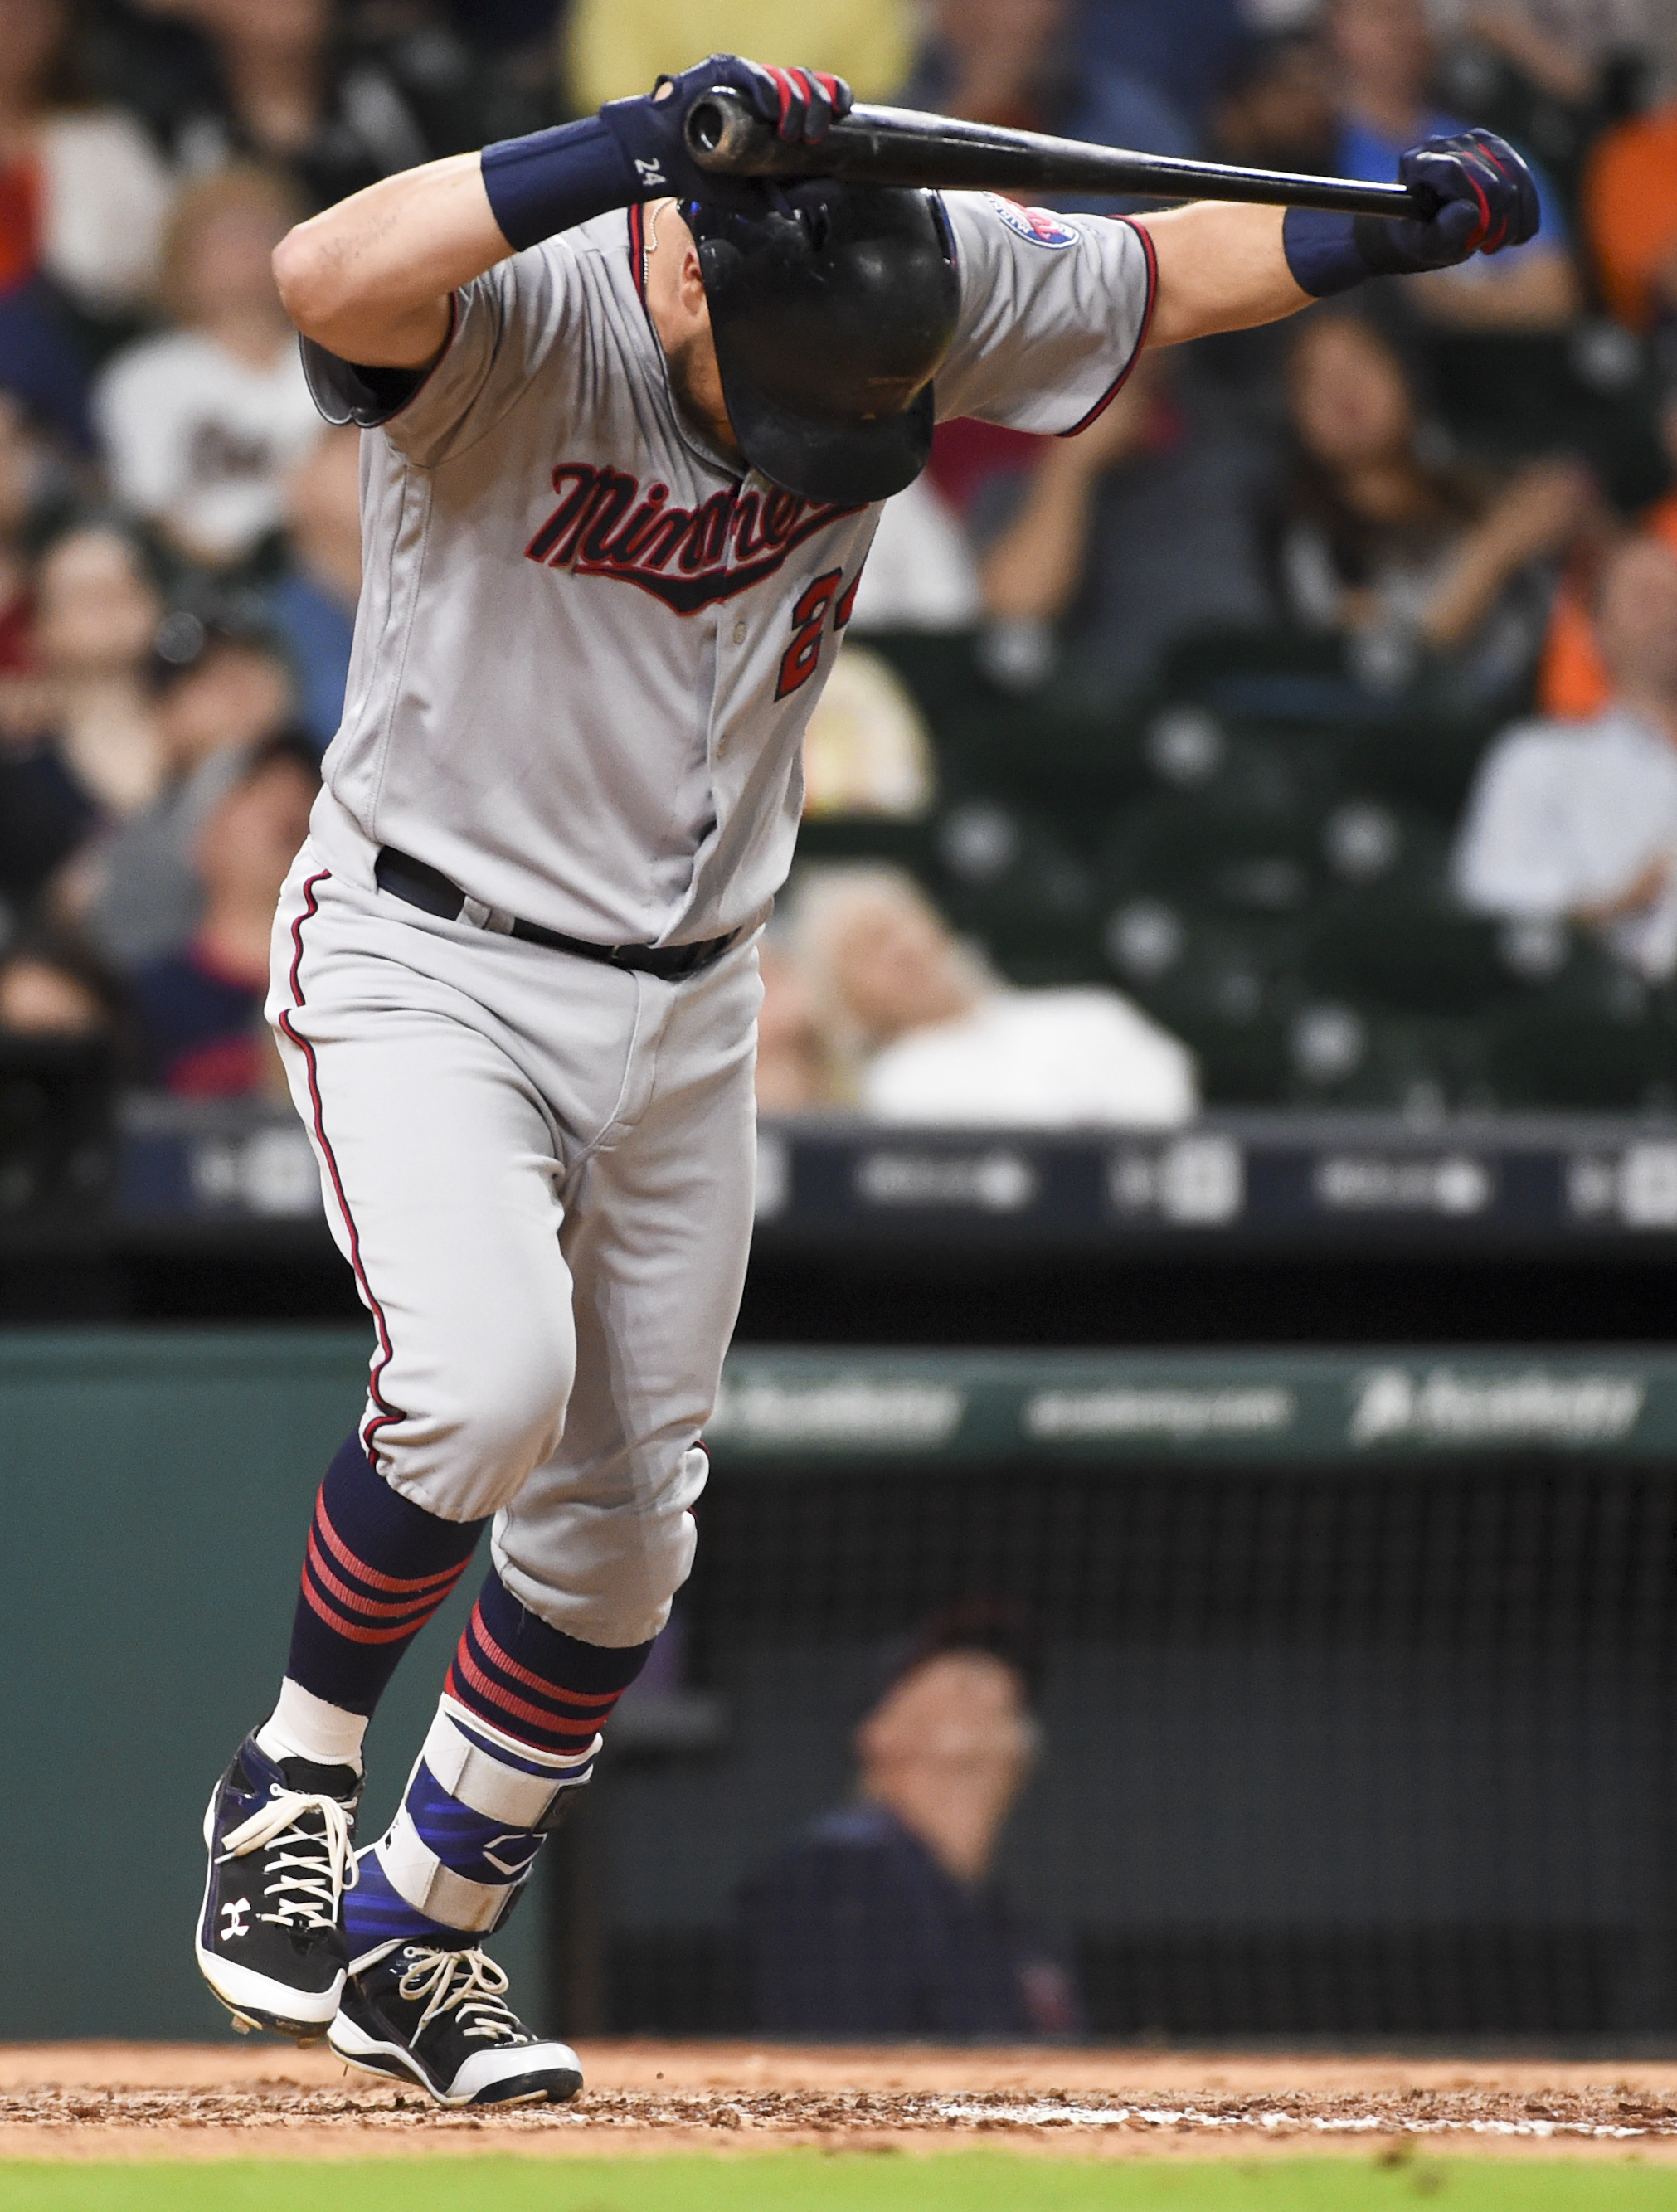 Minnesota Twins' Trevor Plouffe reacts to flying out in the eighth inning of a baseball game against the Houston Astros, Tuesday, May 3, 2016, in Houston. (AP Photo/Eric Christian Smith)